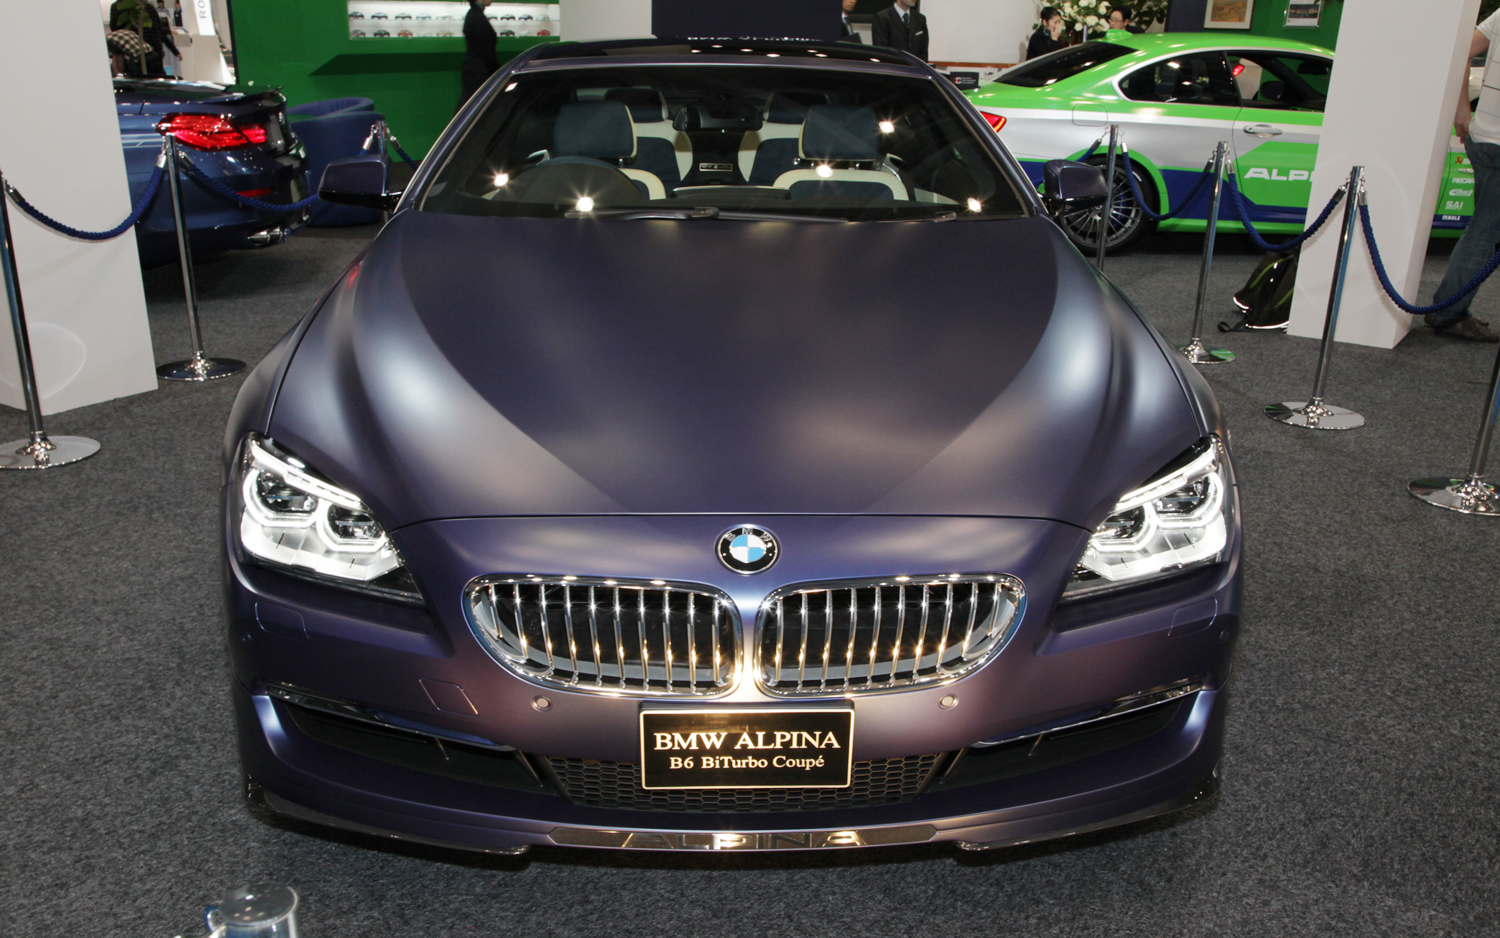 BMW b6 Alpina photo - 4